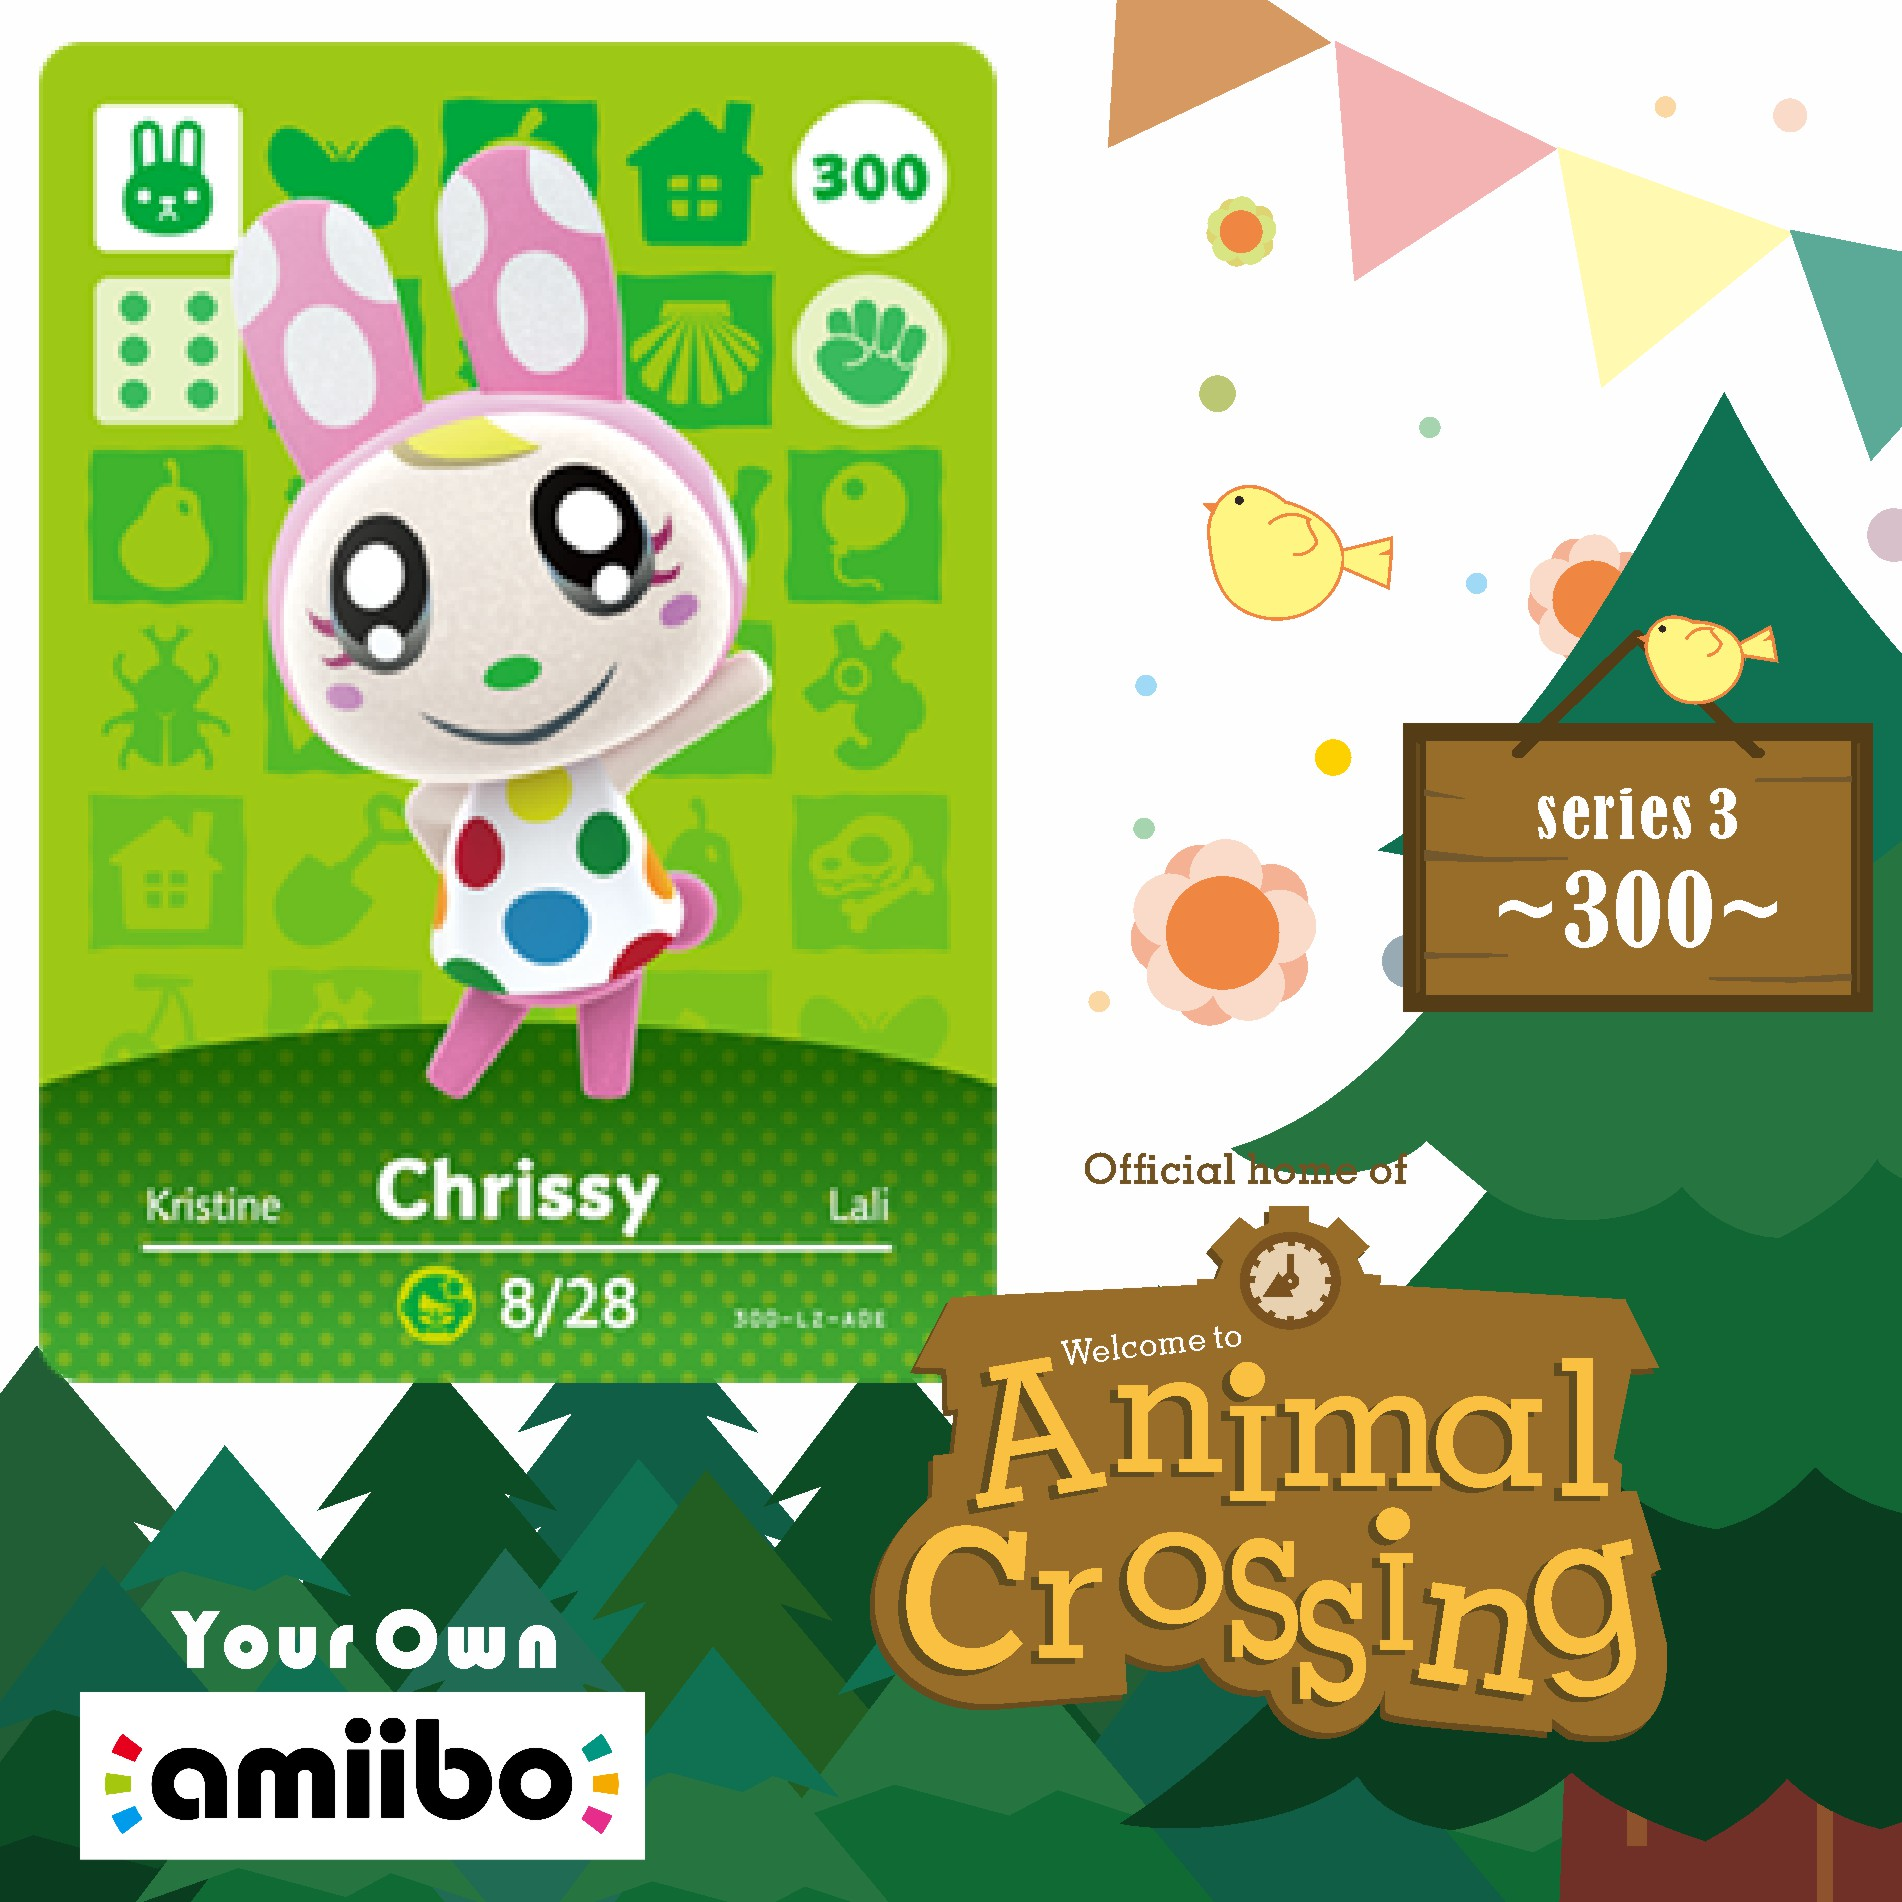 Animal Crossing 300 Villager Amiibo Chrissy Cards Amiibo Chrissy Game Card For NS Game New Horizosn Chrissy 300 Season Series 4